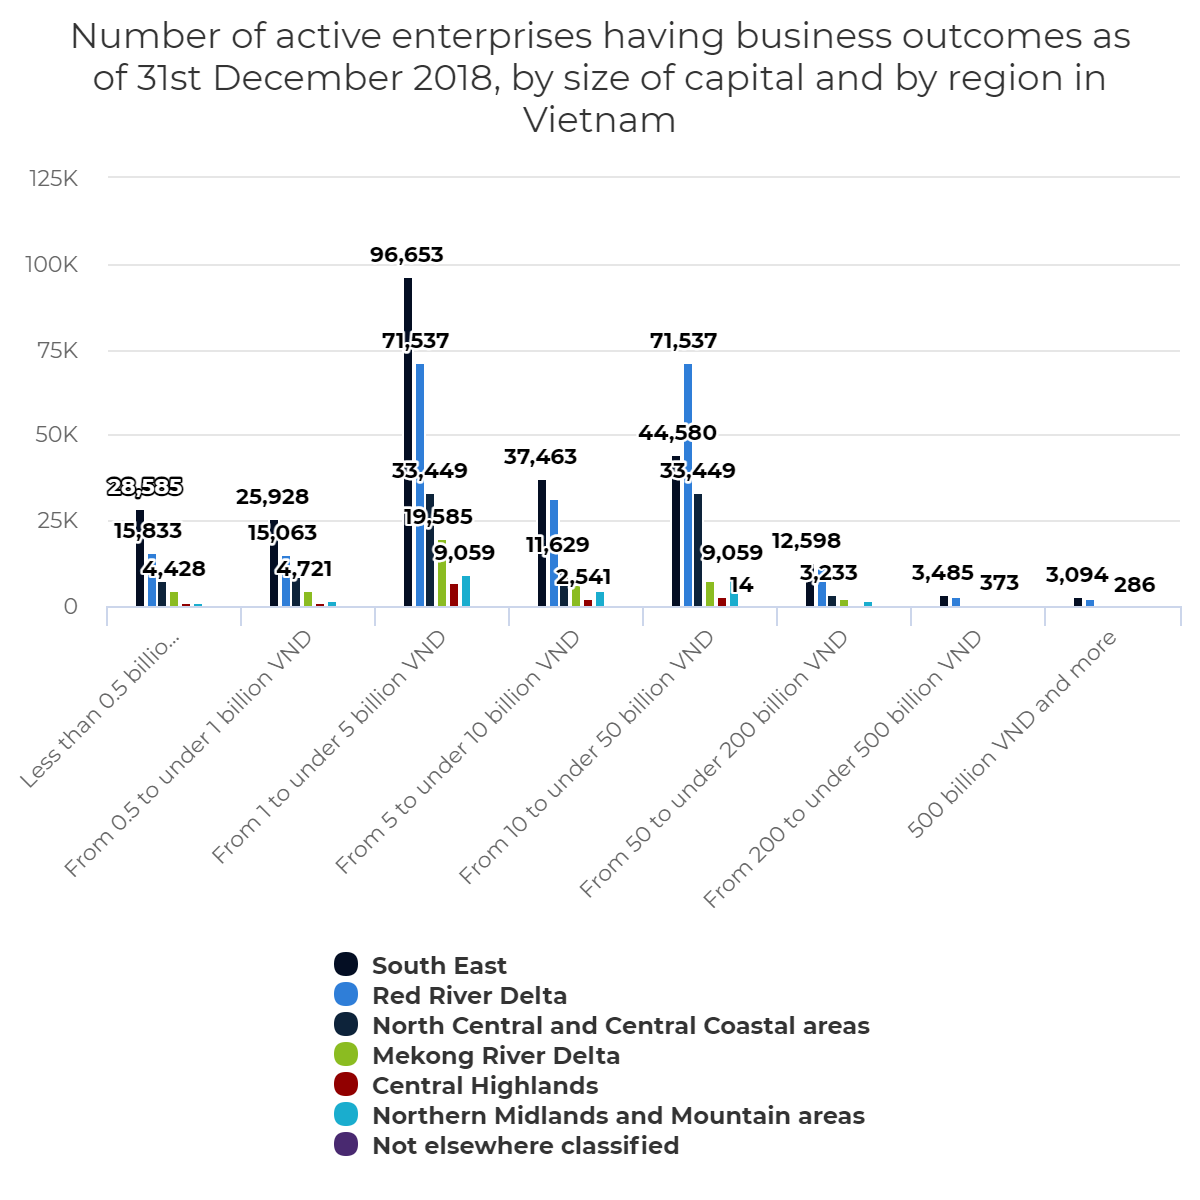 Number of active enterprises having business outcomes as of 31st December 2018, by size of capital and by region in Vietnam